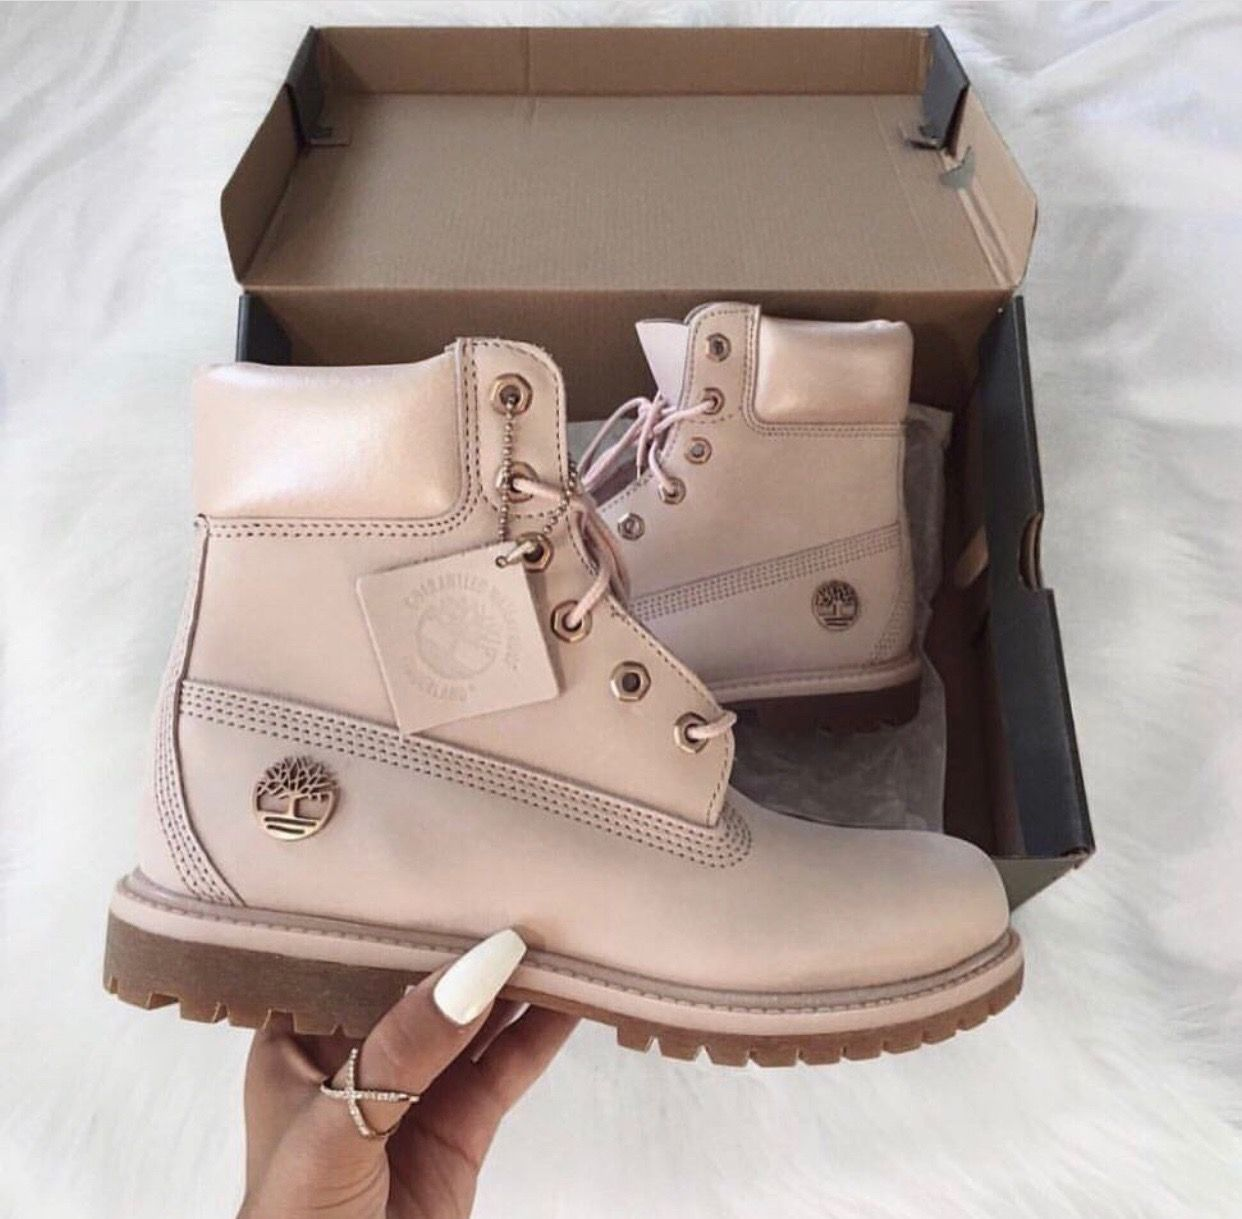 S H O E S✨   Timberland boots